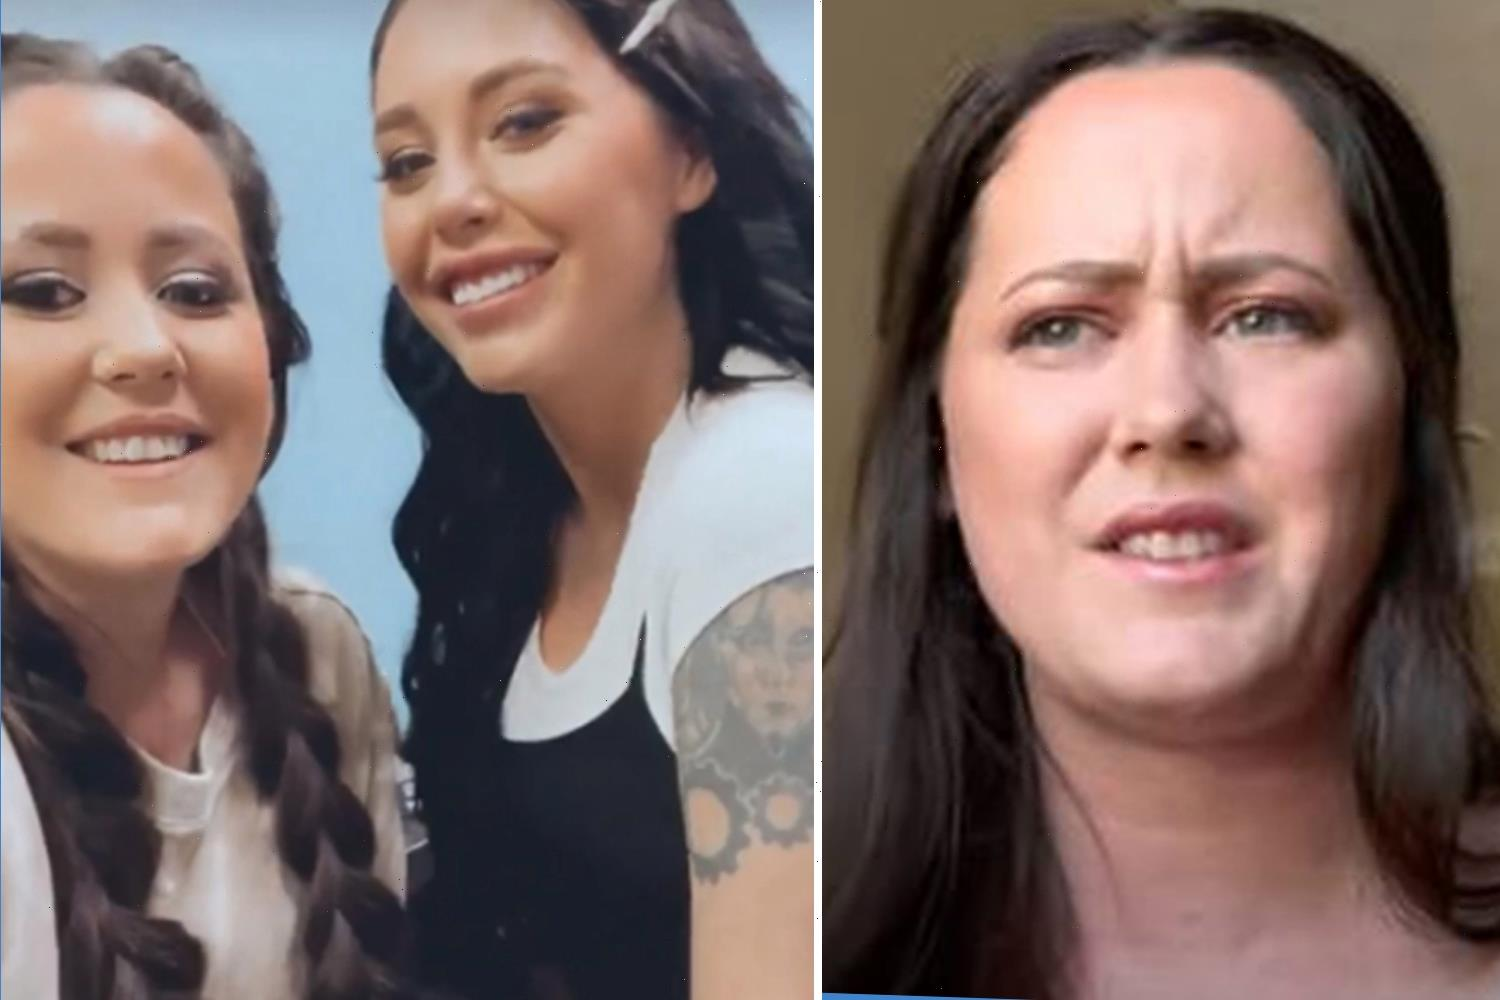 Teen Mom Jenelle Evans SLAMS 90 Day Fiance's Deavan Clegg for 'going behind her back' & 'getting her fired from podcast'